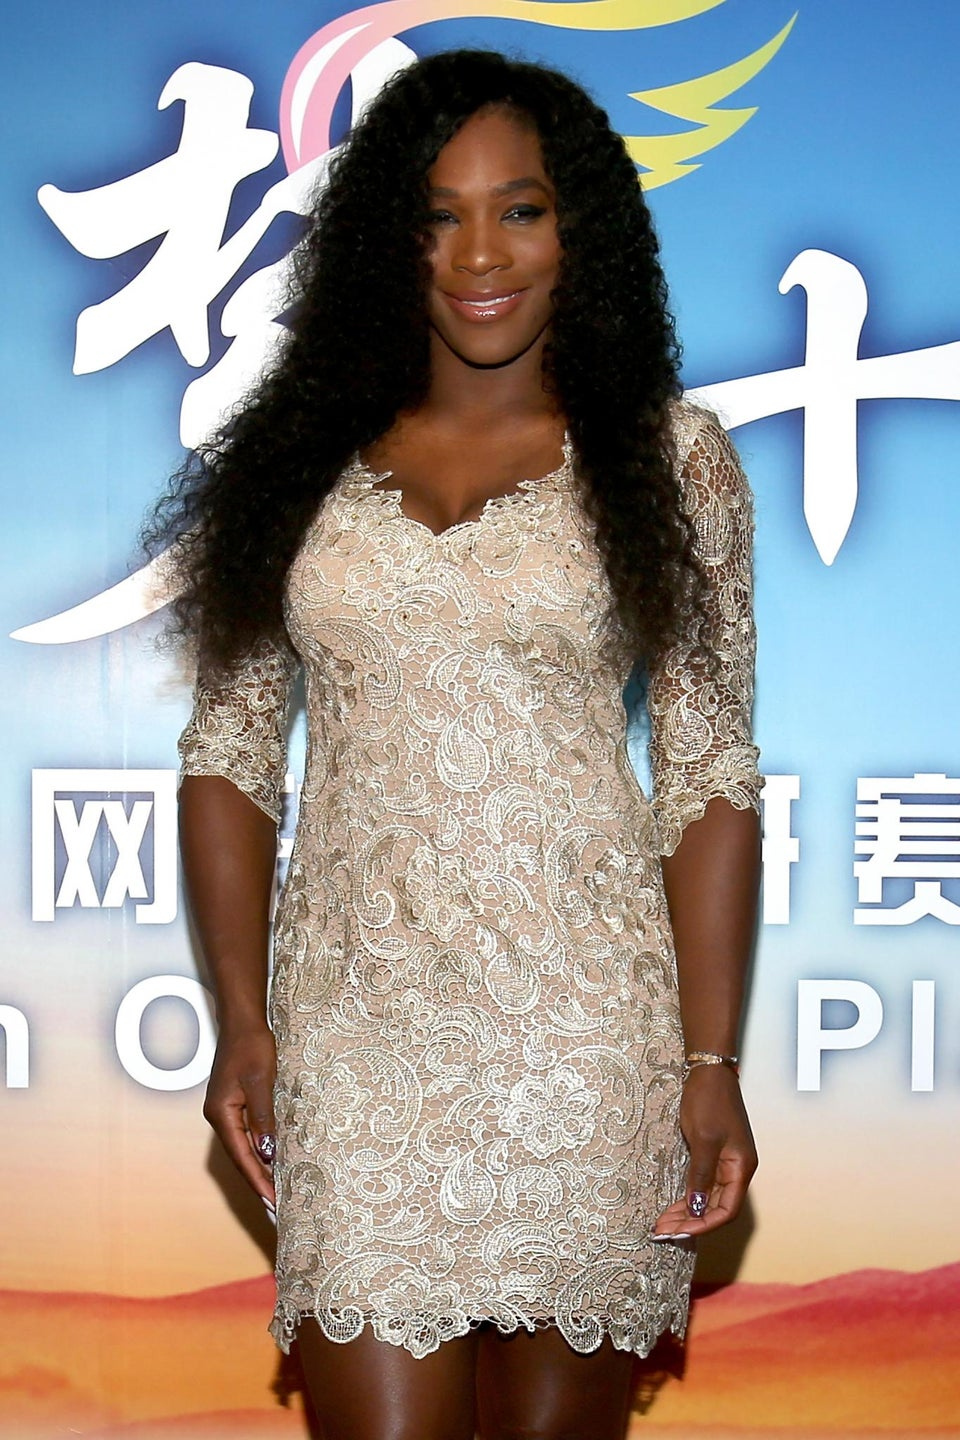 Coffee Talk: Serena Williams Named AP's Athlete of the Year